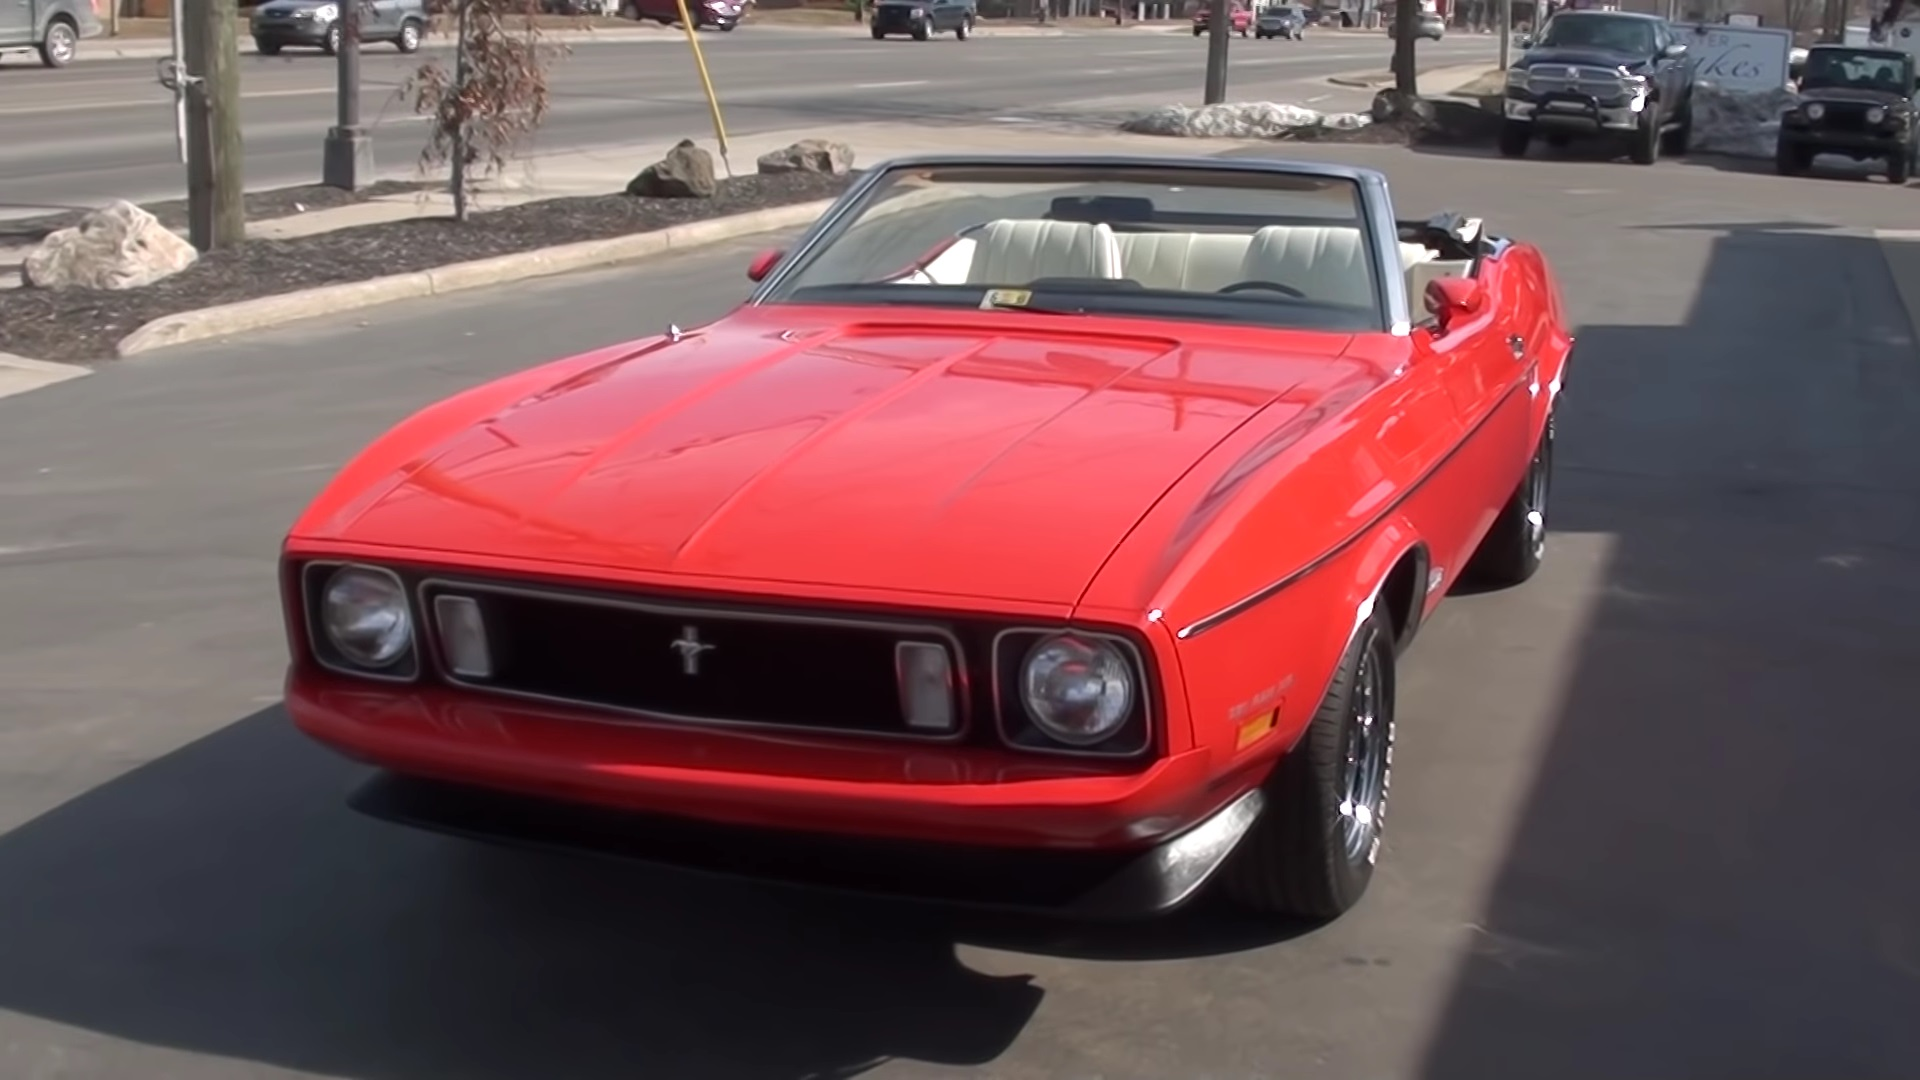 Video: 1973 Ford Mustang Convertible Overview